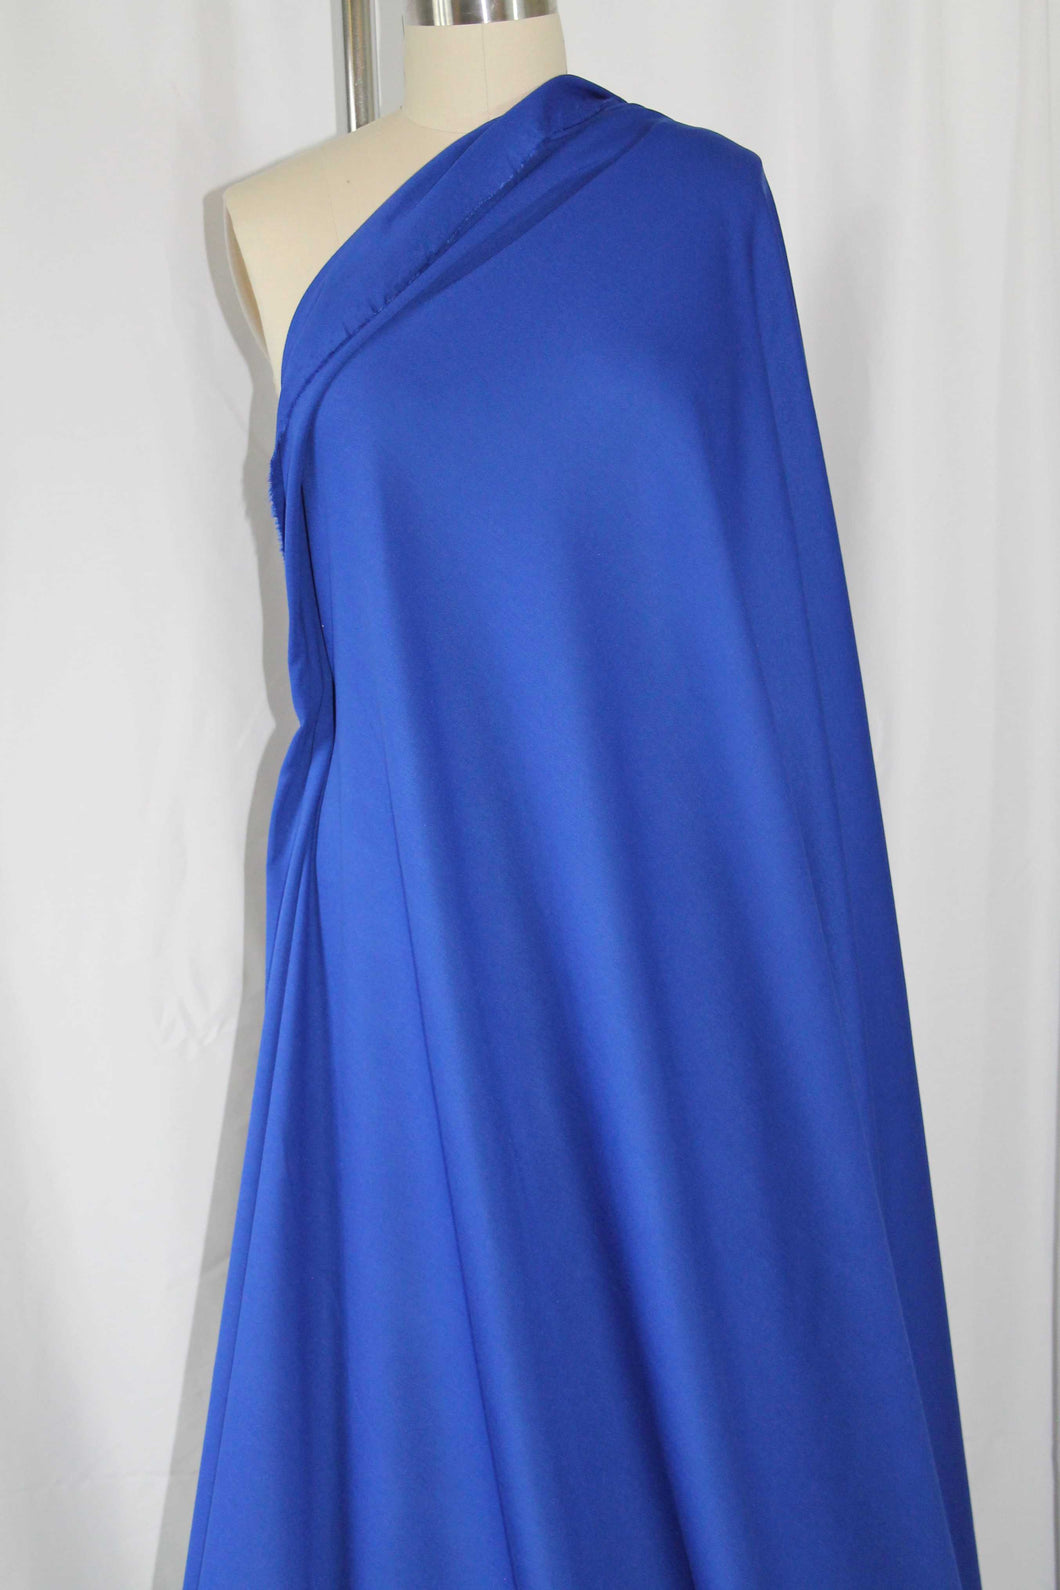 Designer Rayon Double Knit - Royal Blue